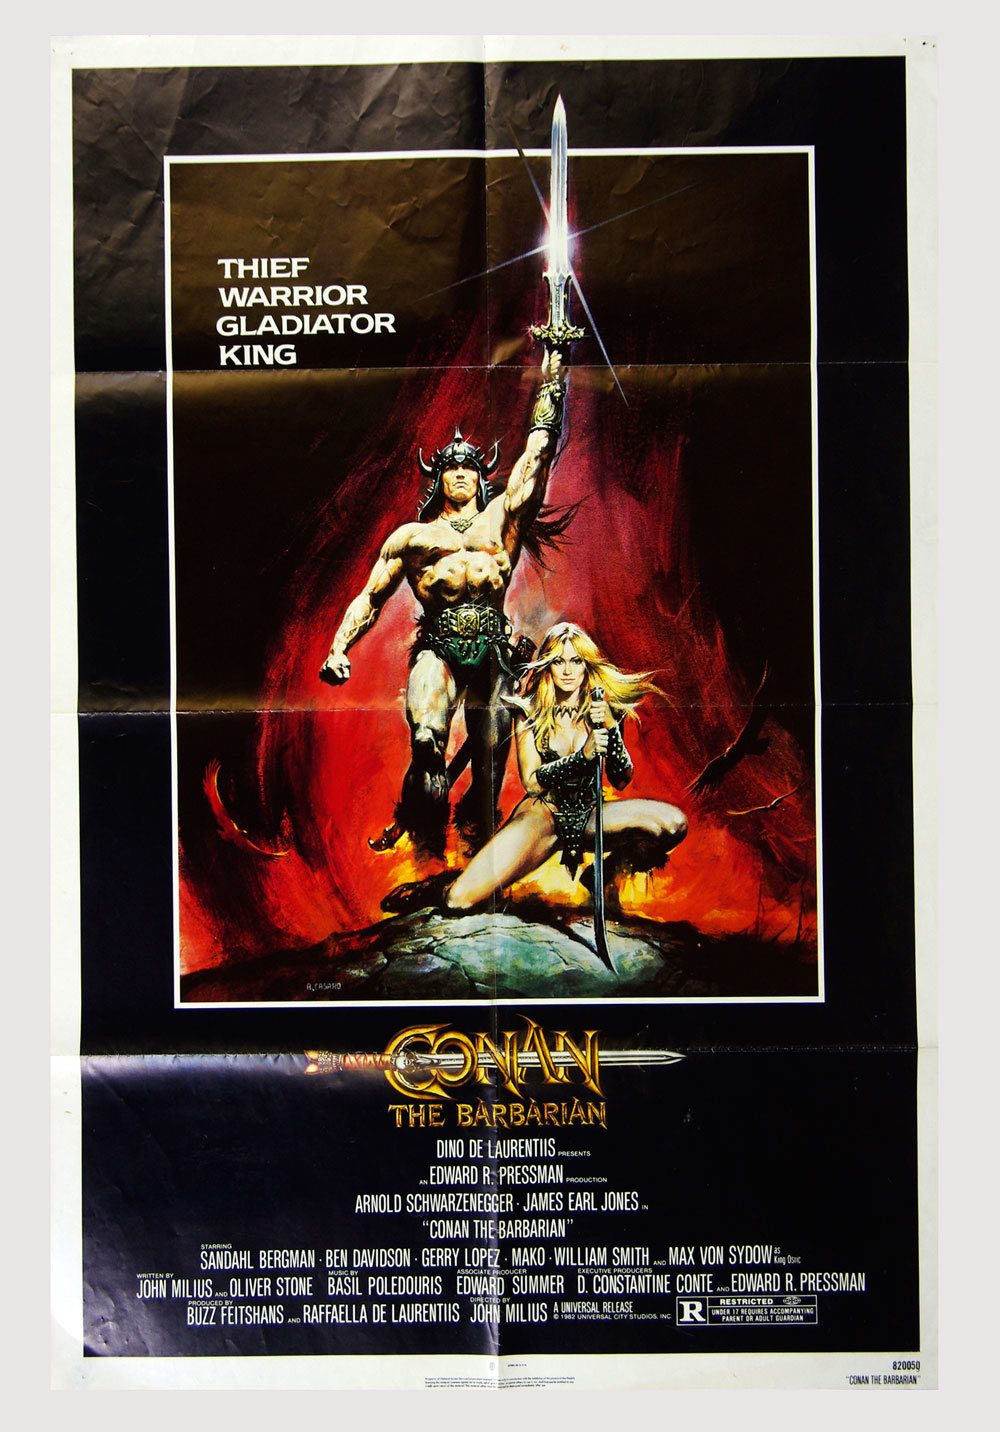 Conan The Barbarian Movie Poster 1982 Arnold Schwarzenegger 27 x 41 1 sheet